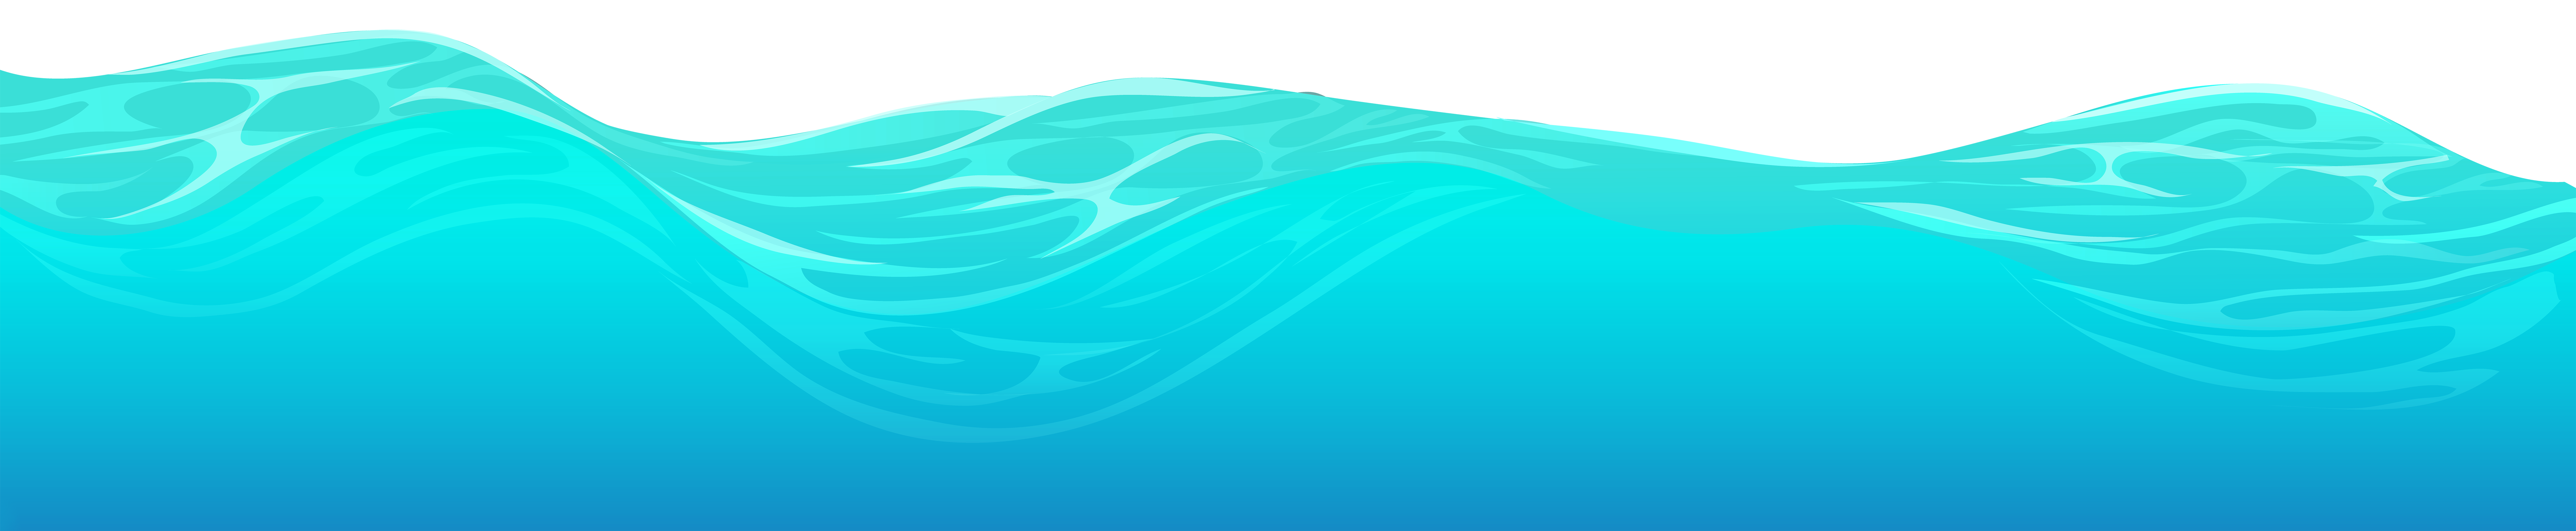 Sea clipart. Ground png clip art